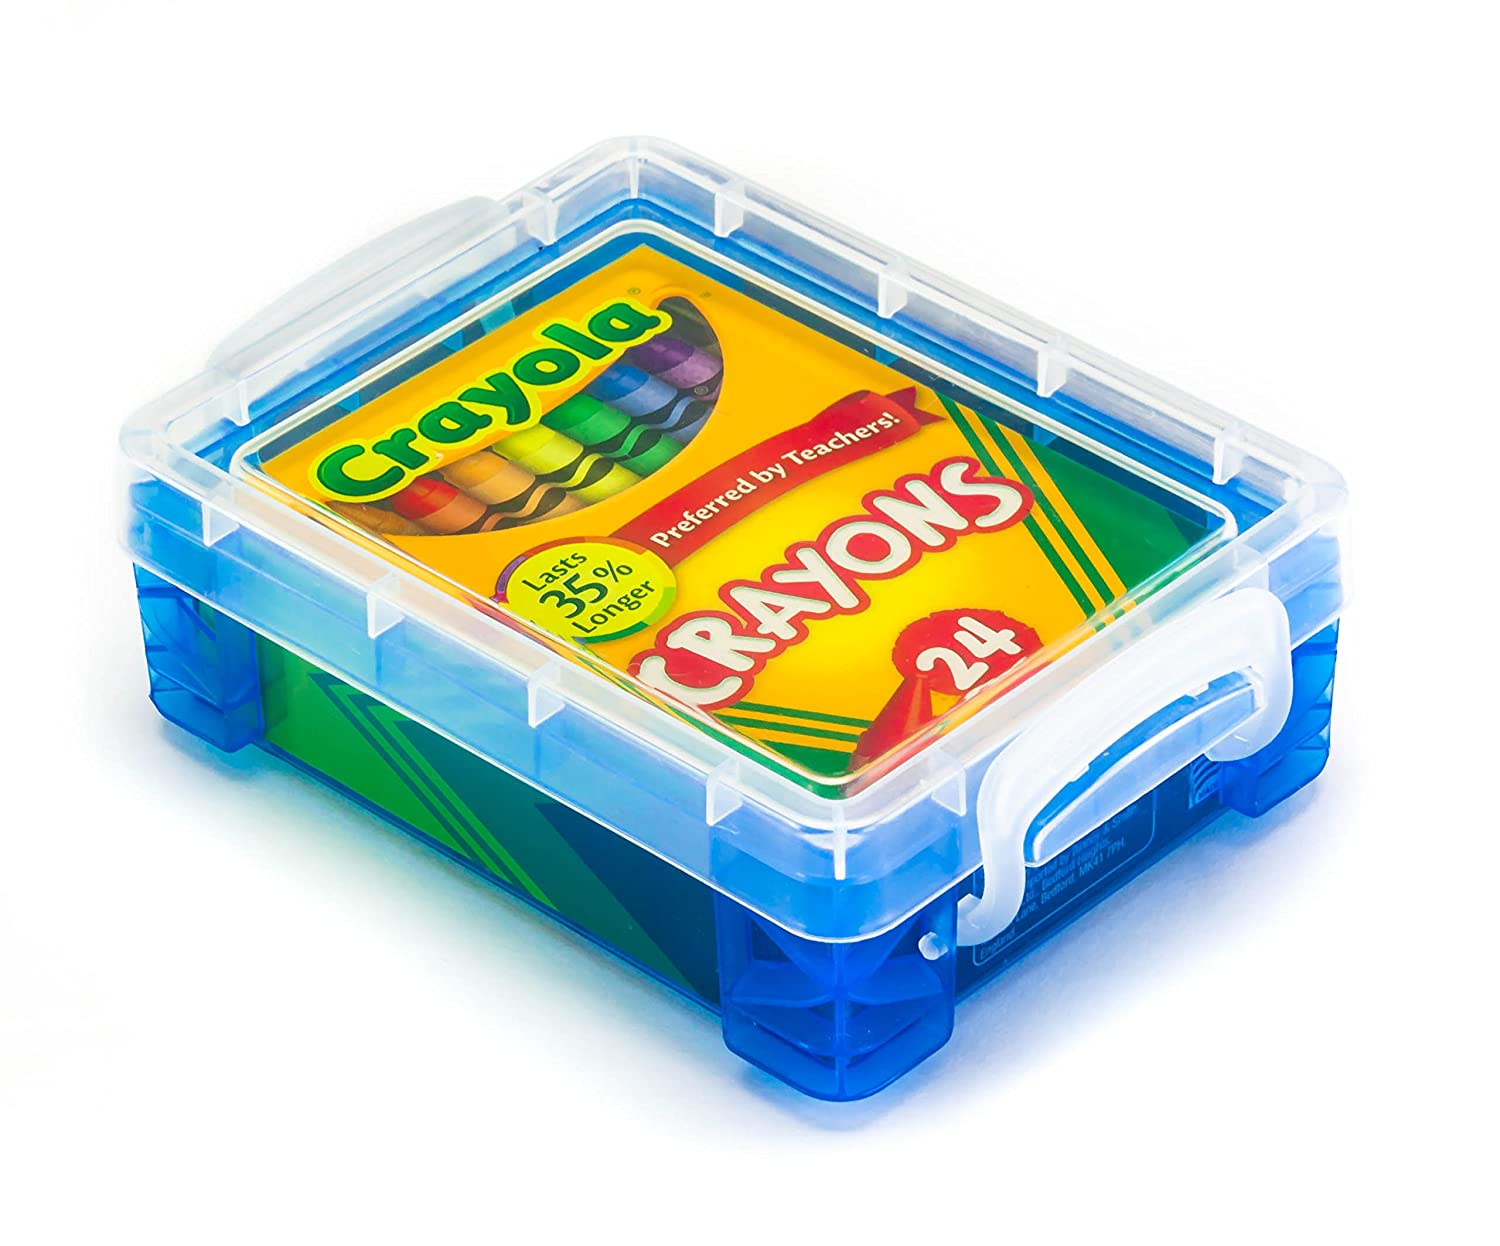 Crayola Crayons 24 Count with Clear Super Stacker Plastic Crayon Box (Bundle) HaleyMAE